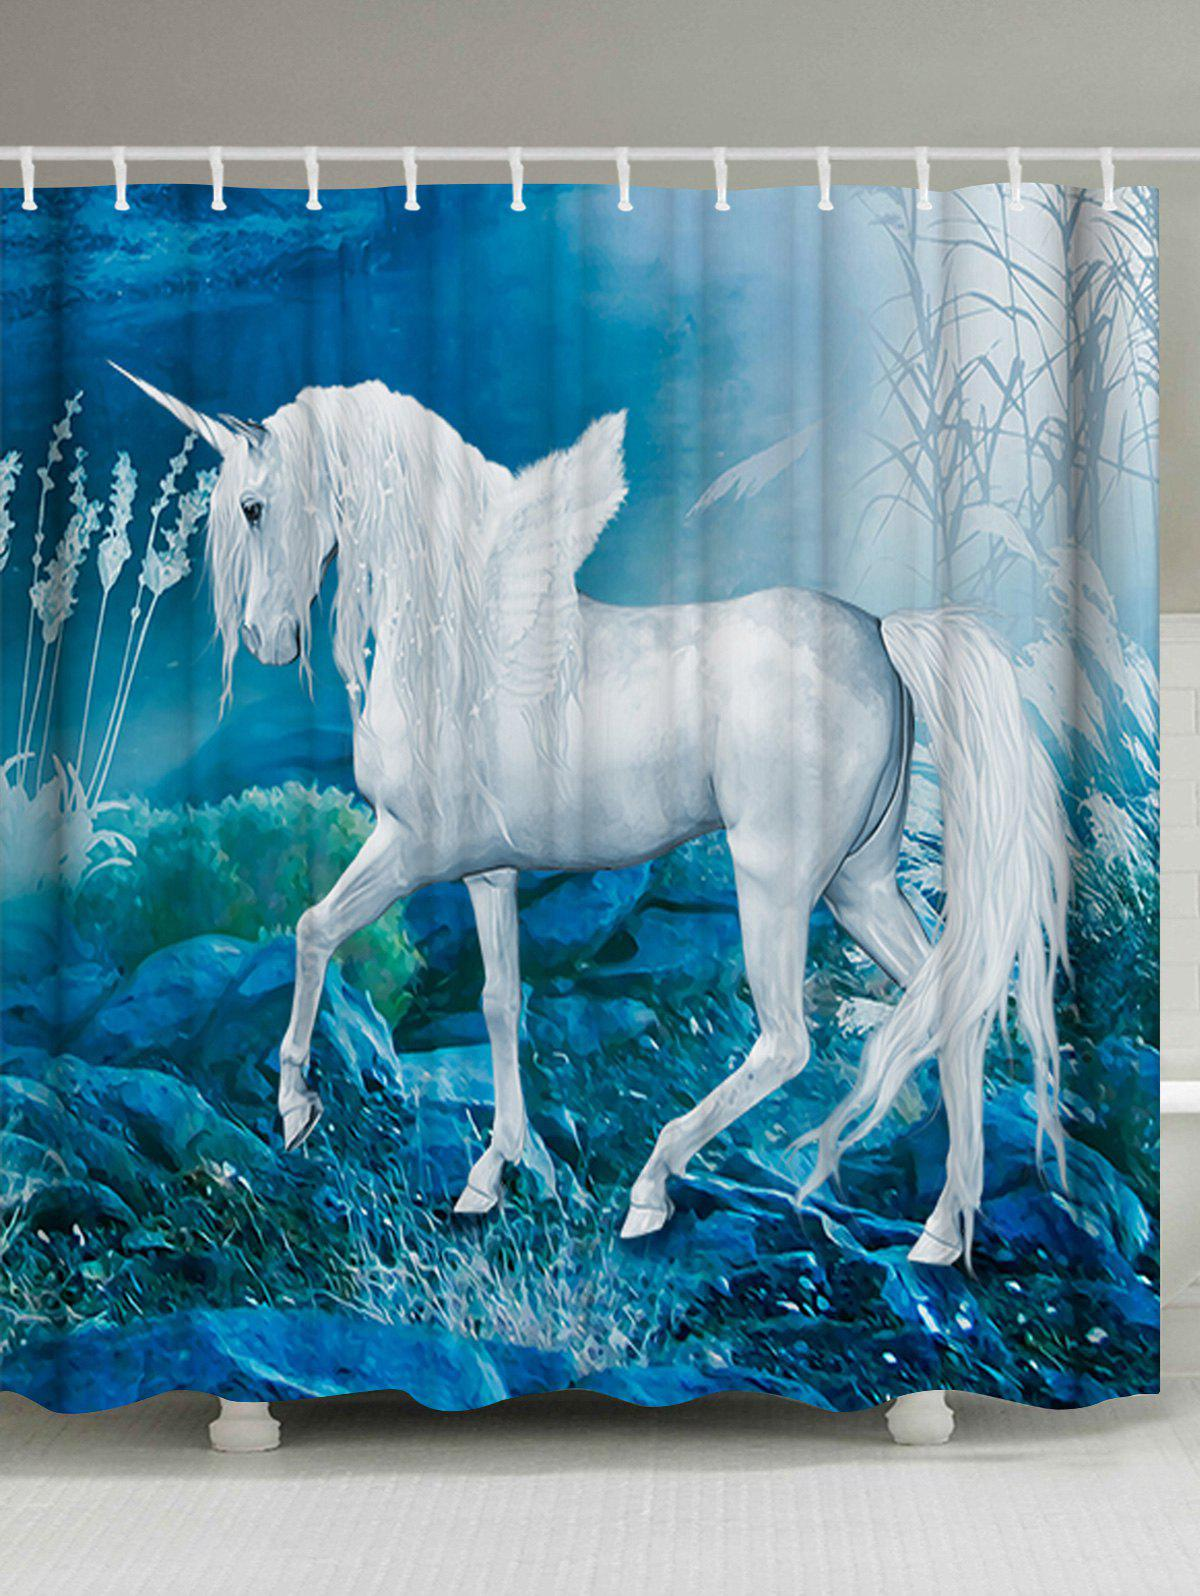 Dreamlike Unicorn Printed Shower Curtain with Hooks - LAKE BLUE W71 INCH * L79 INCH